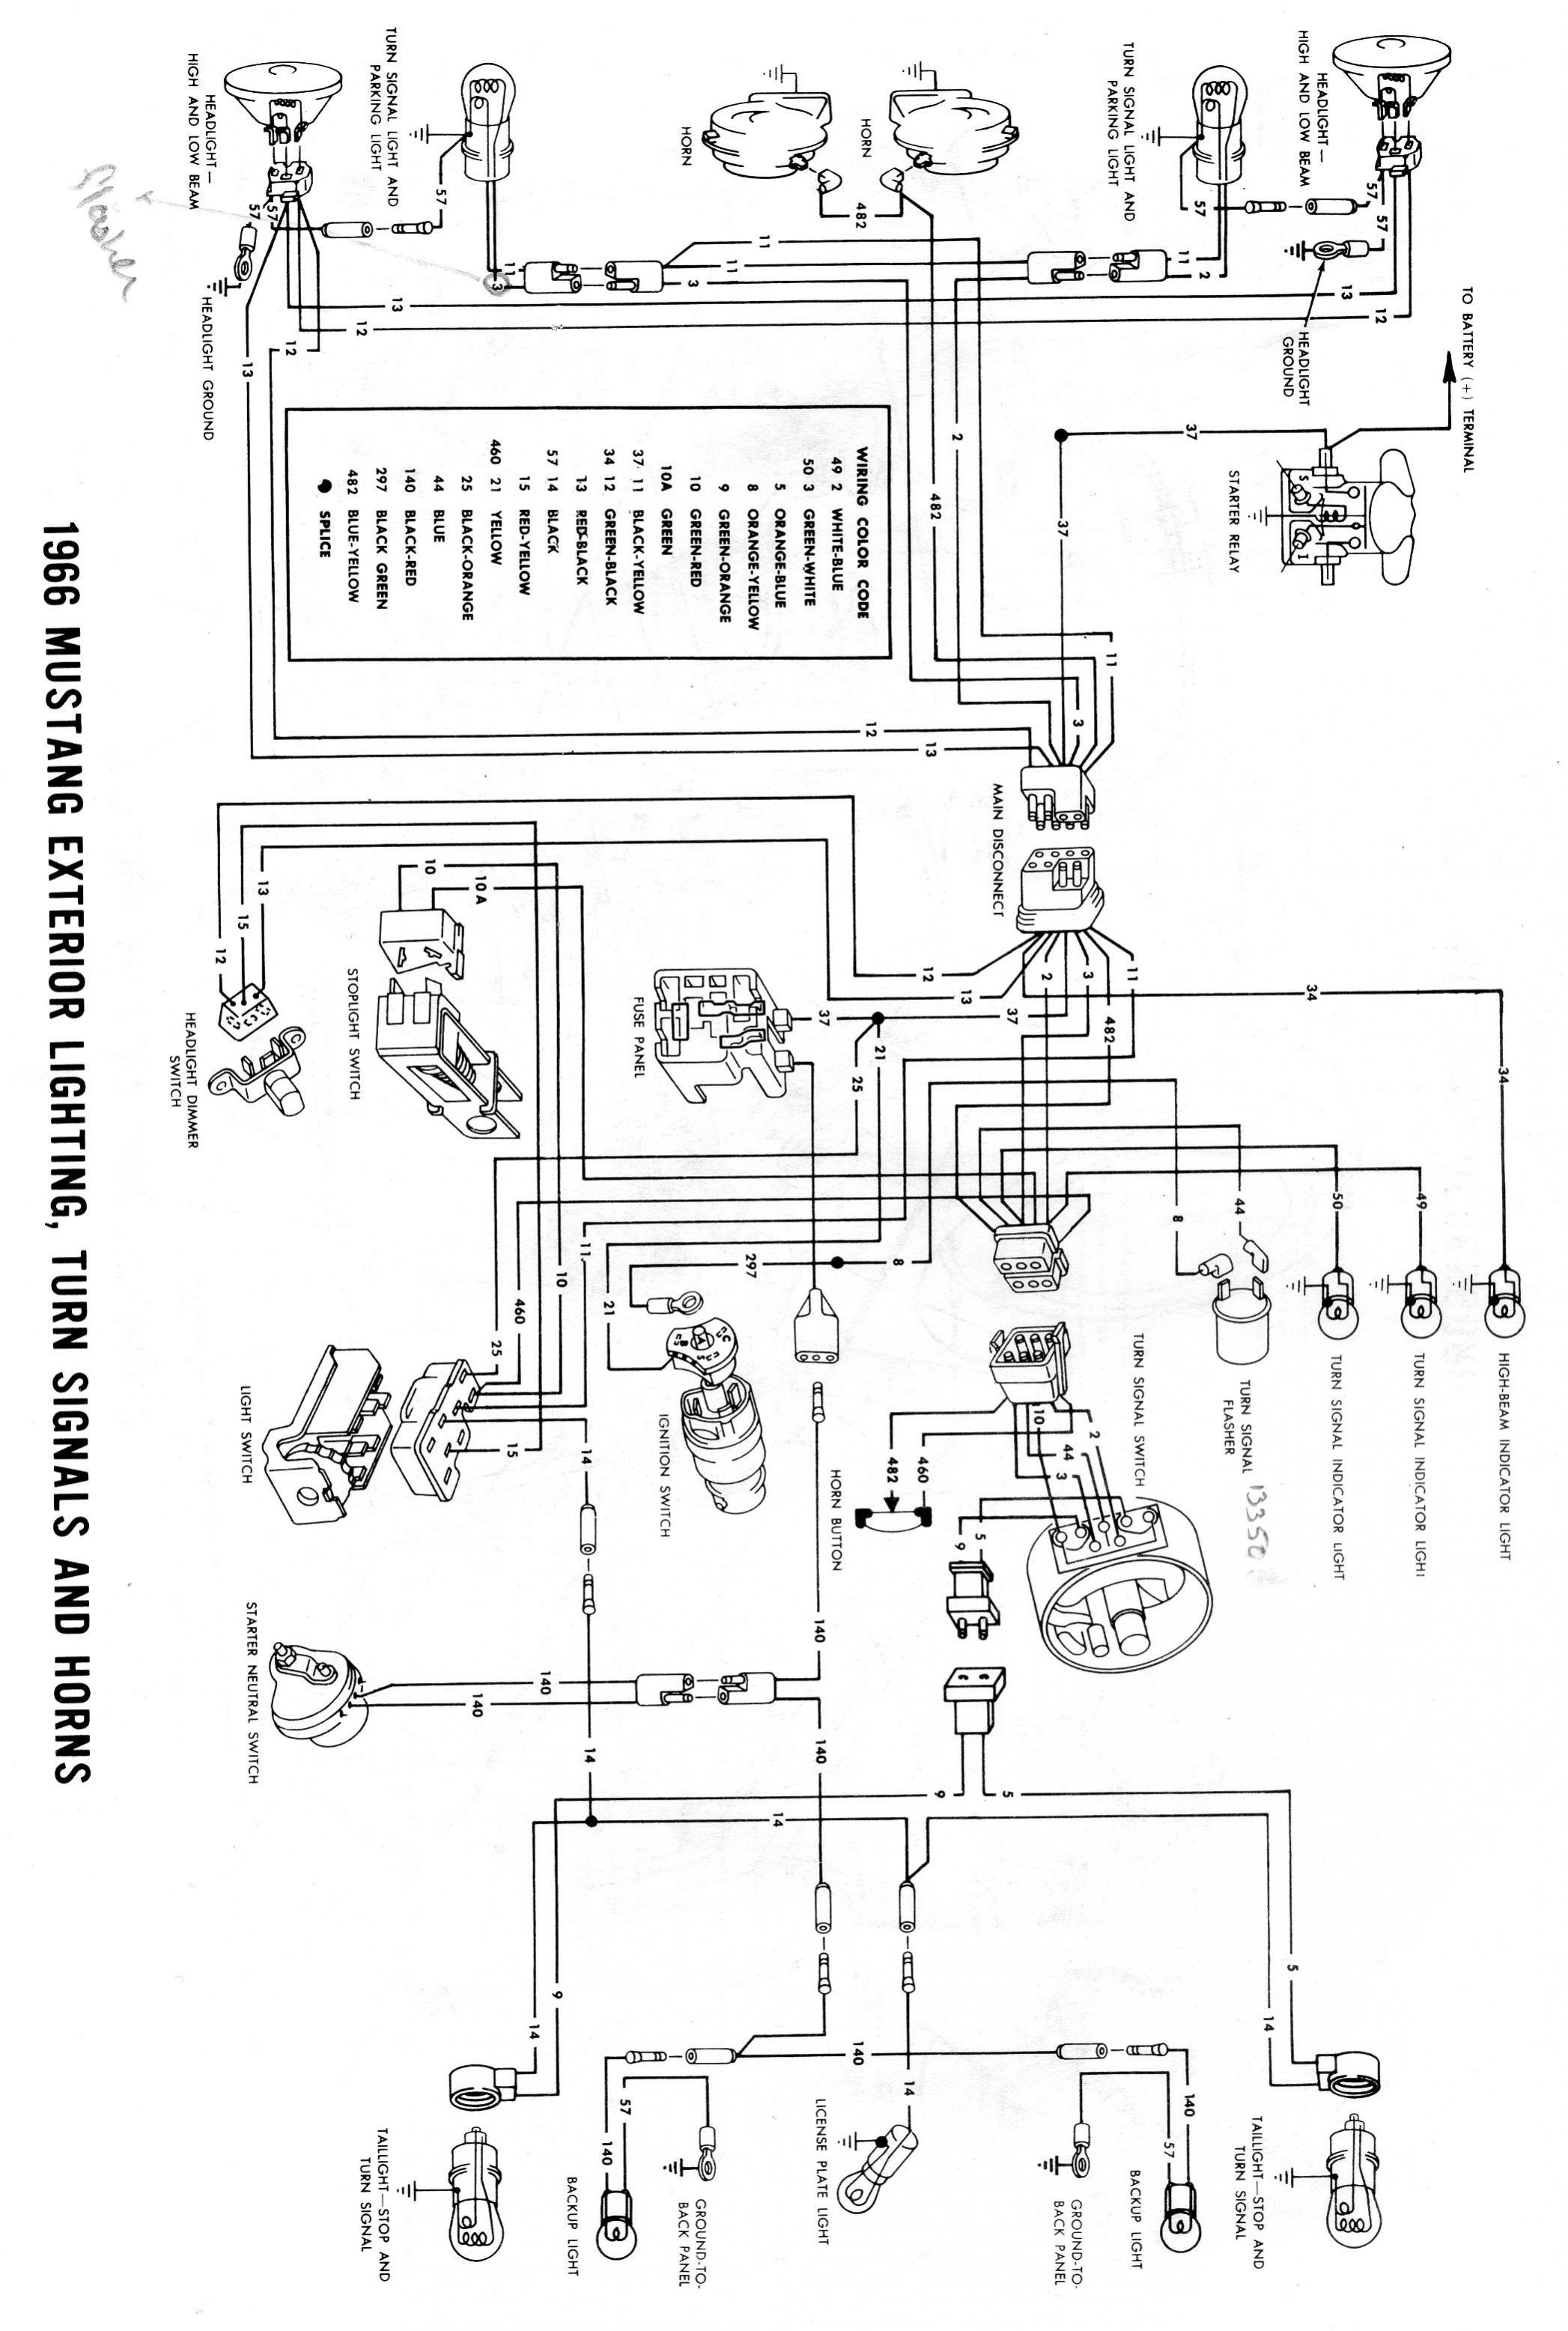 Emergency Flasher Wiring Diagram